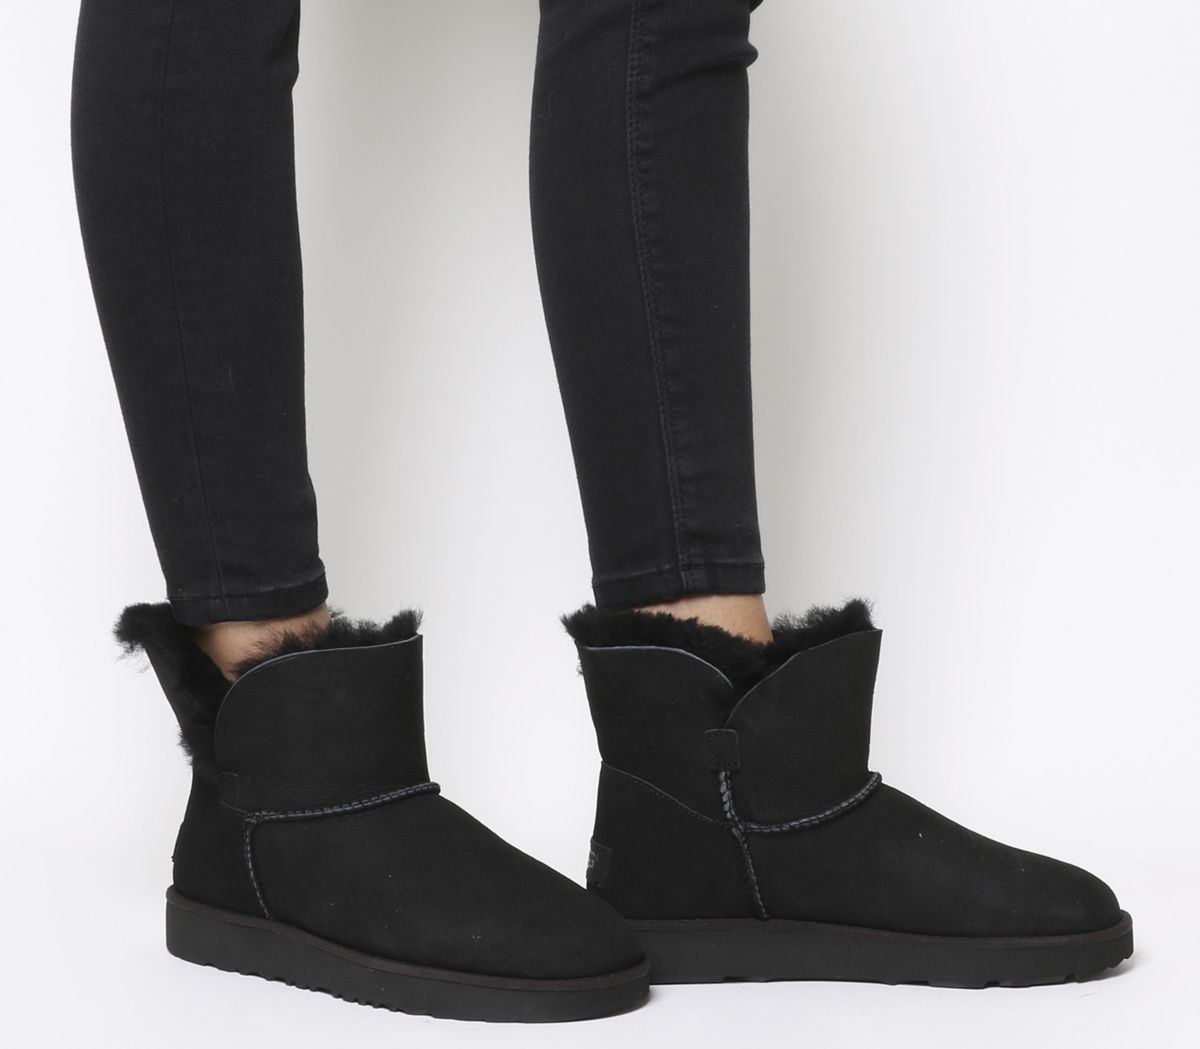 6a140c48ad UGG Classic Cuff Mini Boots Black - Ankle Boots